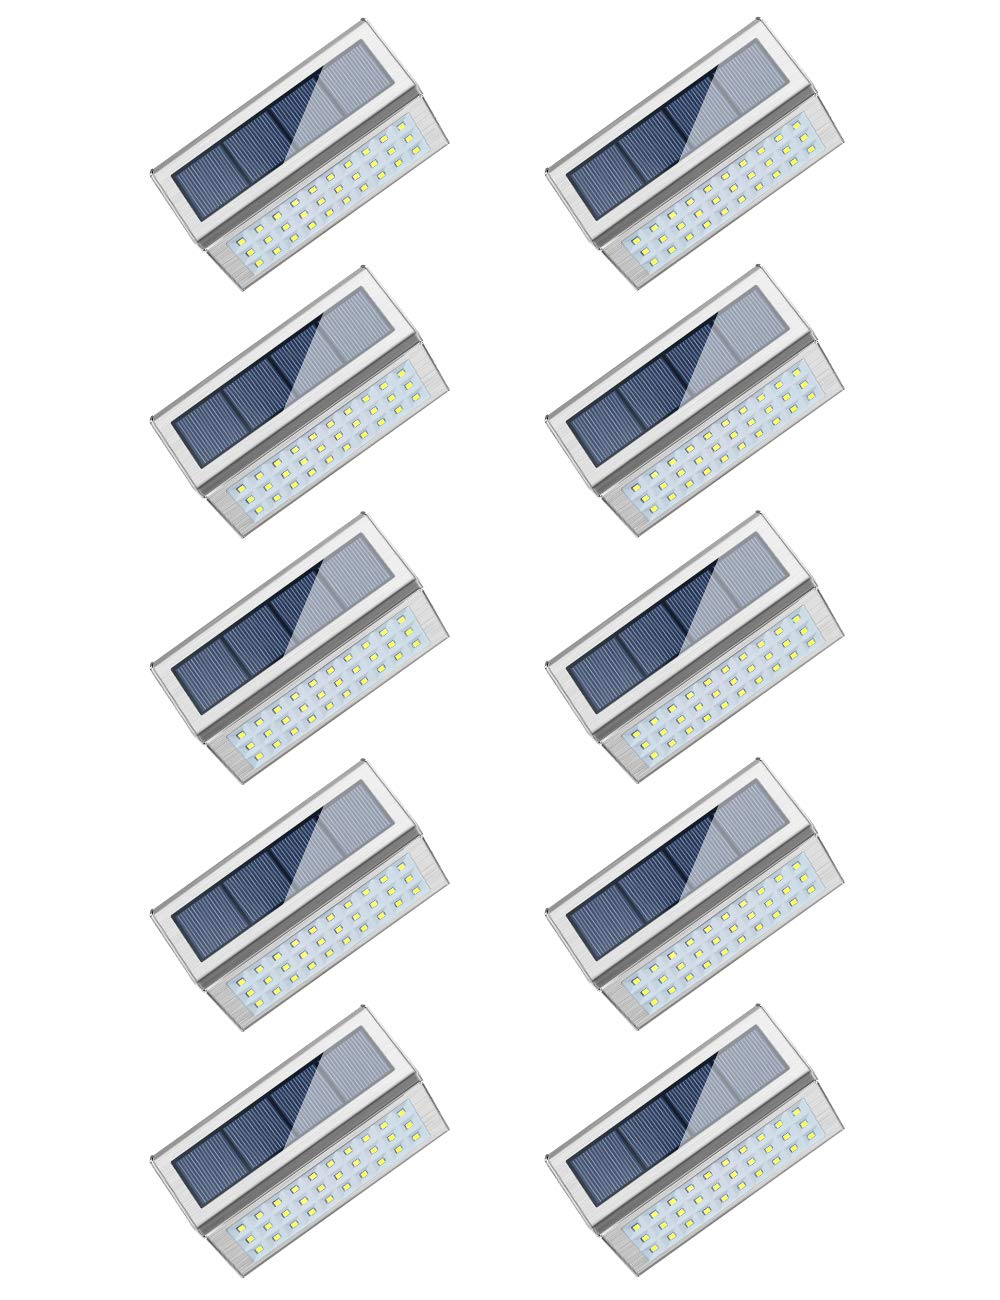 ROSHWEY Solar Deck Lights Outdoor 30 LED Stainless Steel Step Lamps Waterproof Security Lights for Stairs Fence Pathway Wall (Pack of 10, Cool White Light) by ROSHWEY